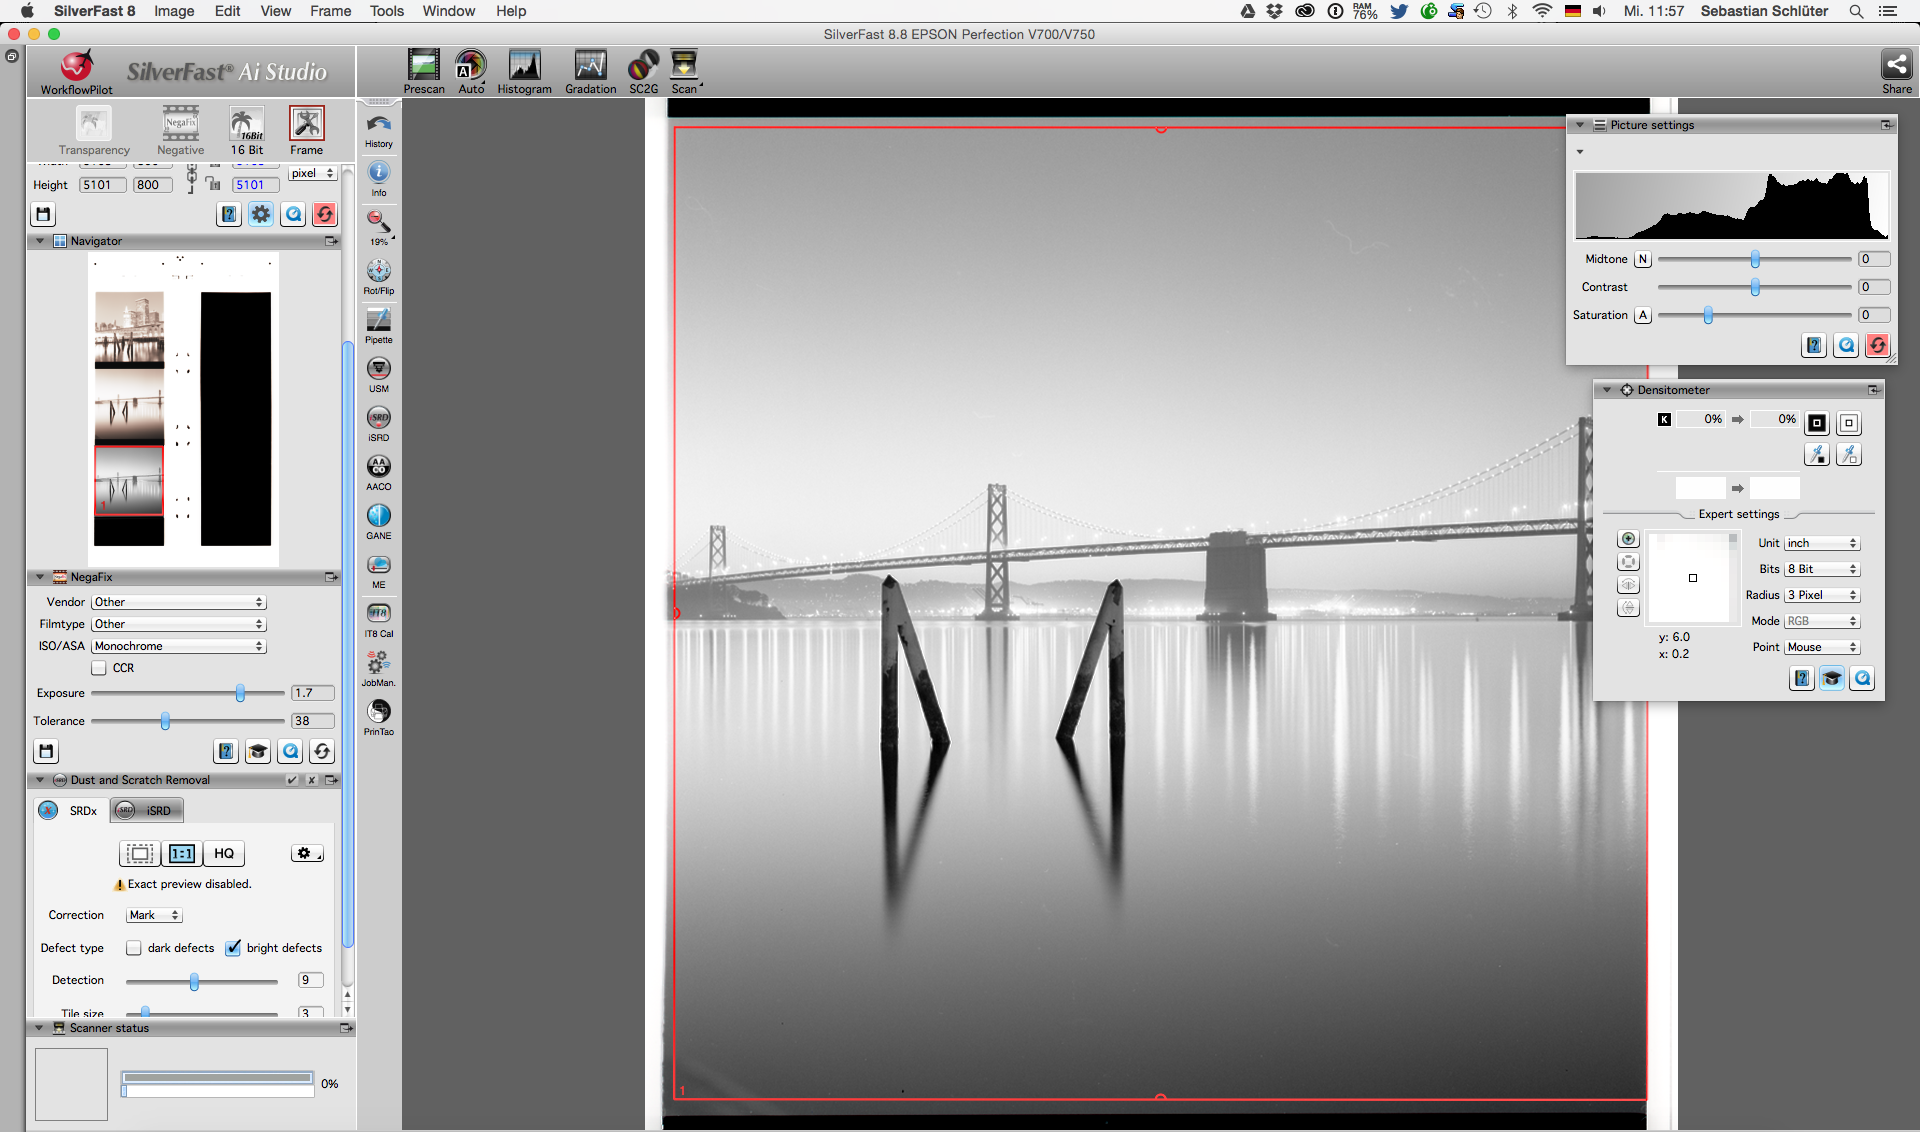 """In order to allow the """"Negafix"""" algorithms to work properly it is important to place the scanning frame inside the negative. This seems to be more important for color film than black and white film, but black and white point setting can be significantly off when including unexposed film areas into the scan frame."""